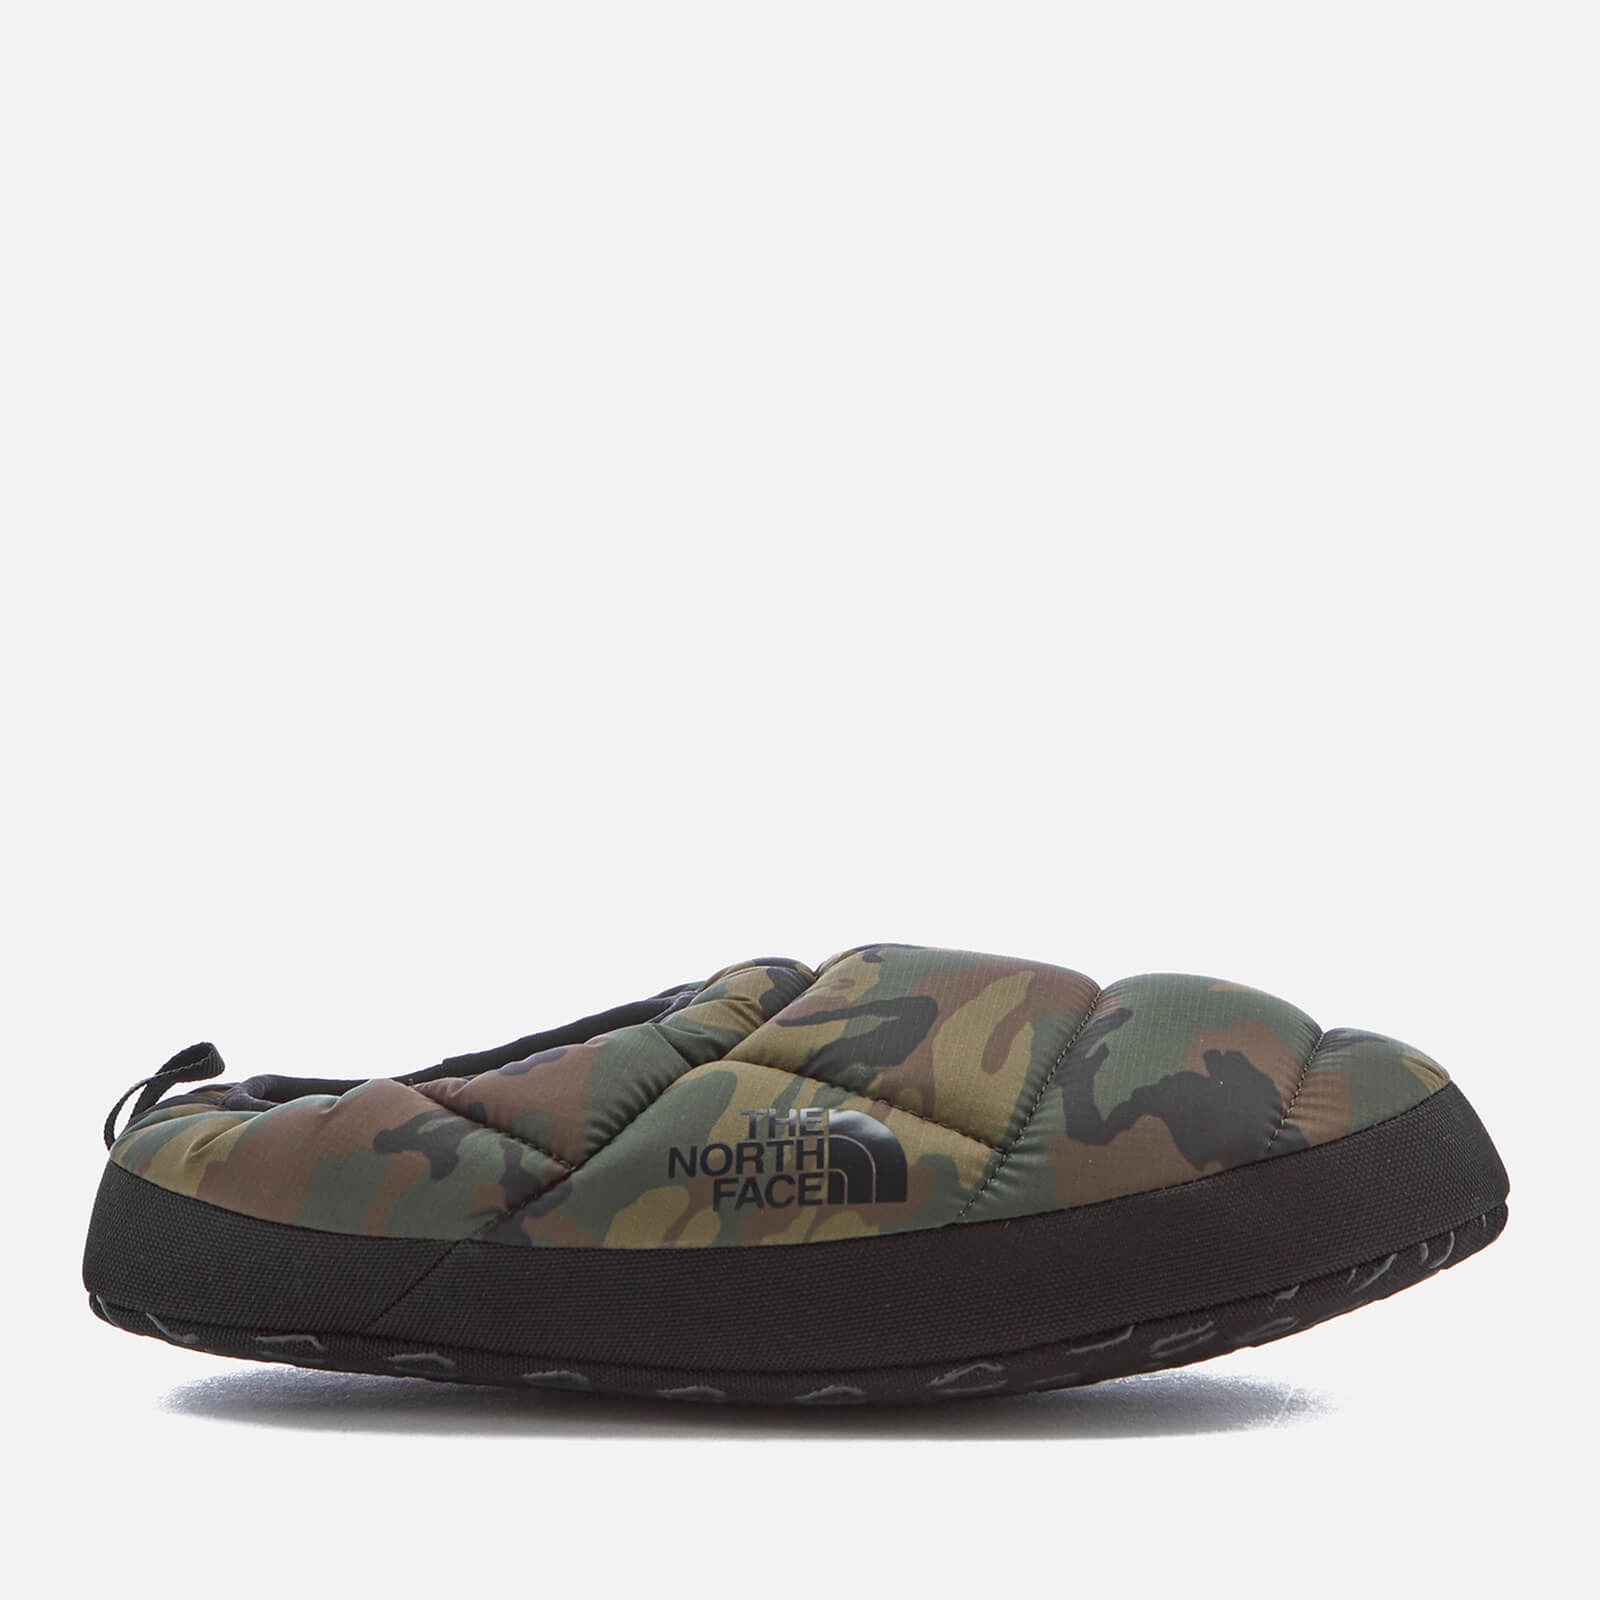 3bb9510e0 The North Face Men's NSE Tent Mule III Slippers - Black Forest Woodland  Camo/TNF Black